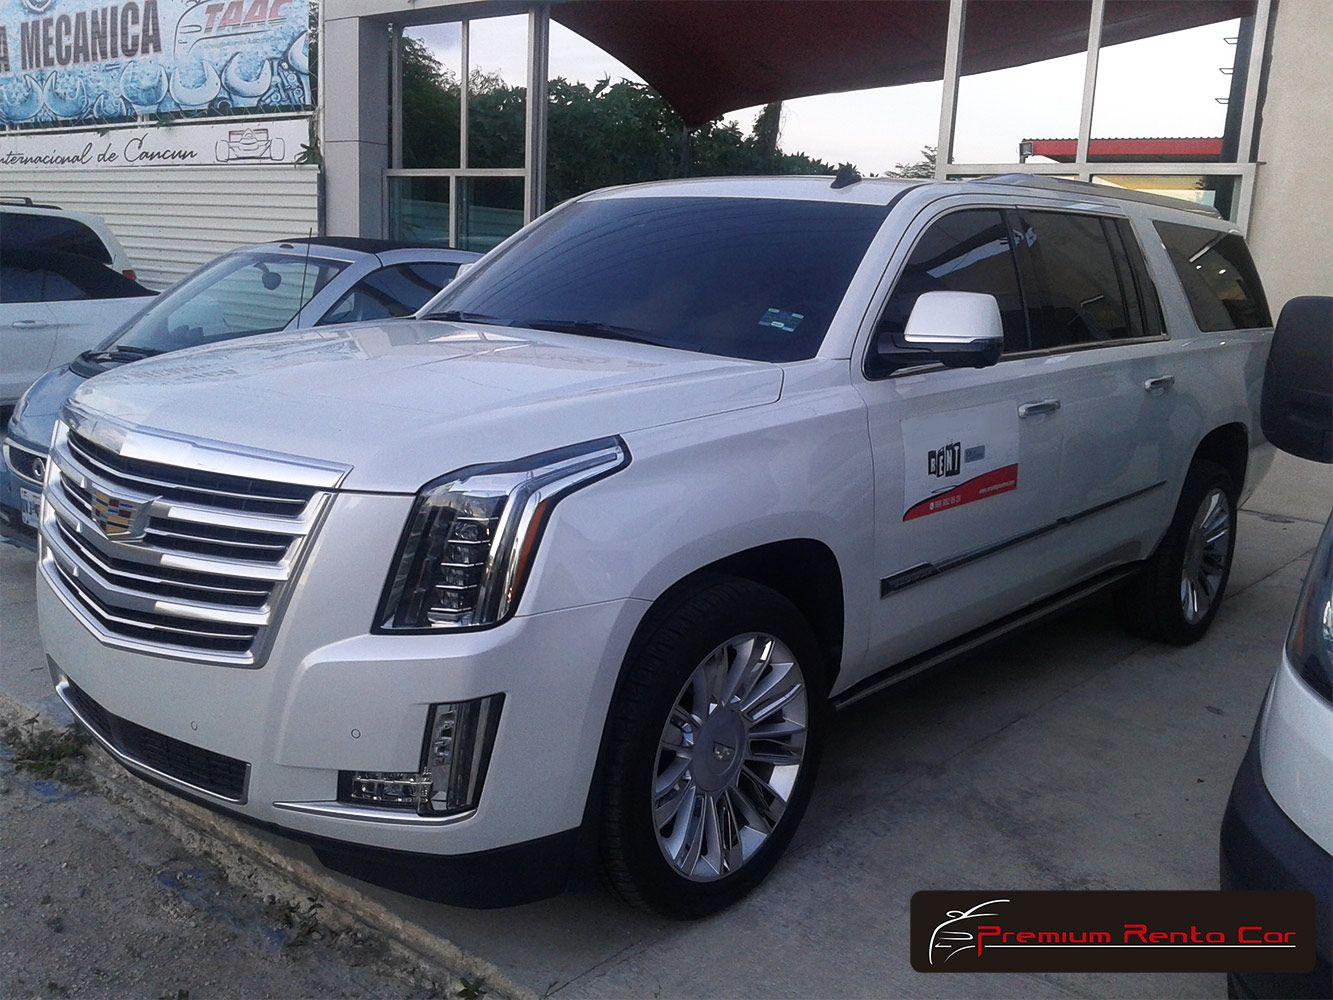 Cadillac escalade platinum 2016 color blanco 2016 cadillac escalade platinum white